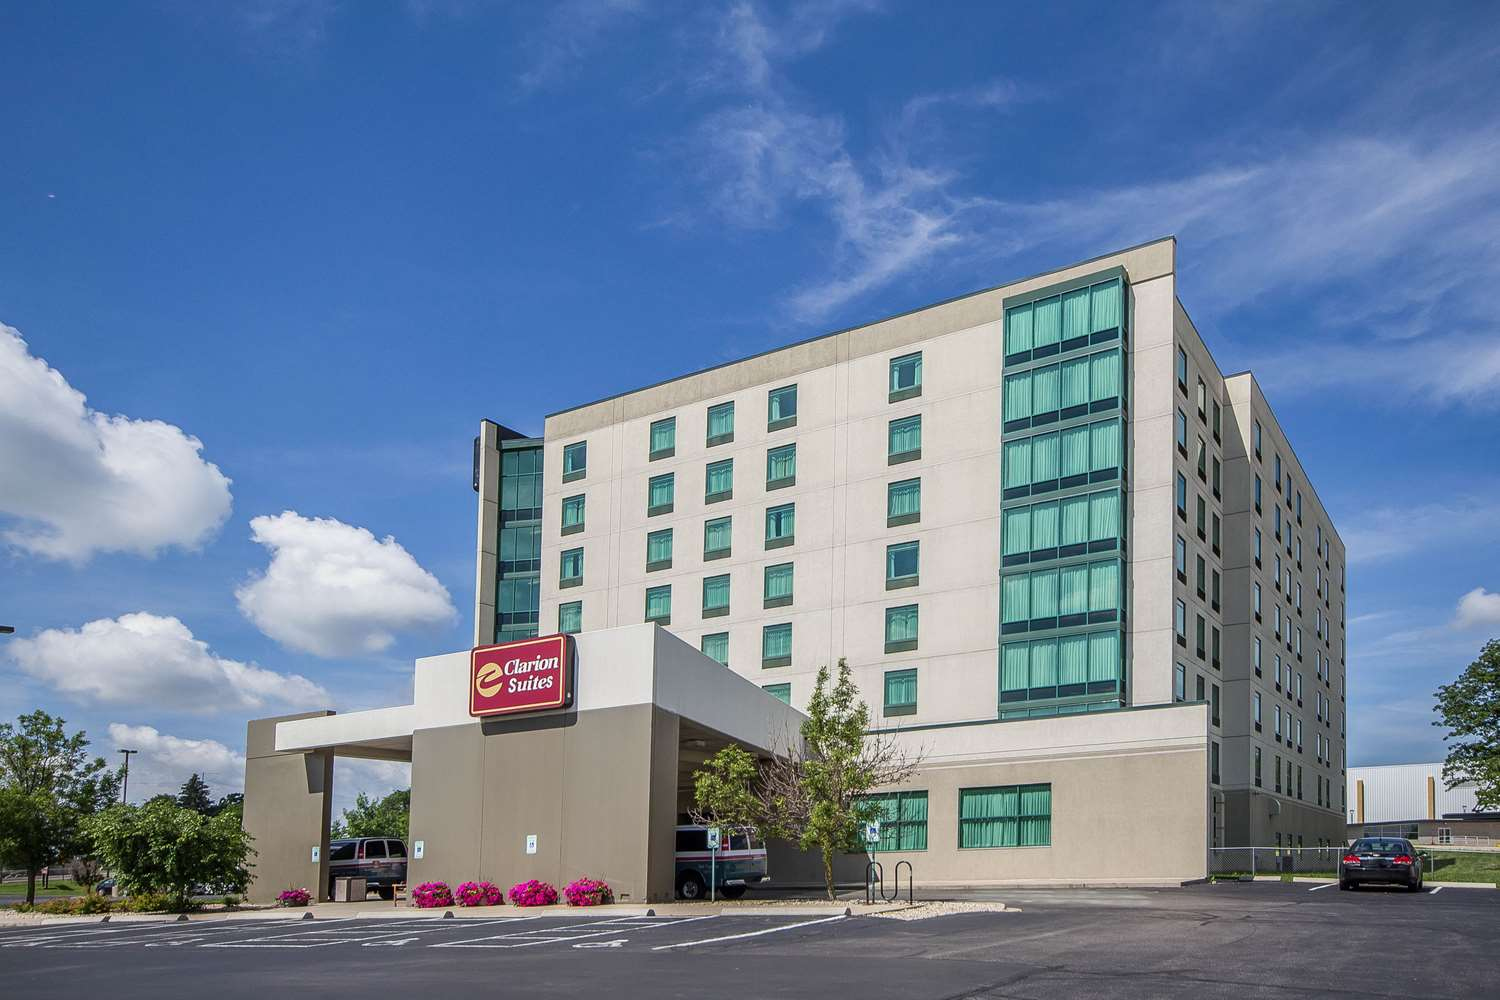 Clarion Suites Madison